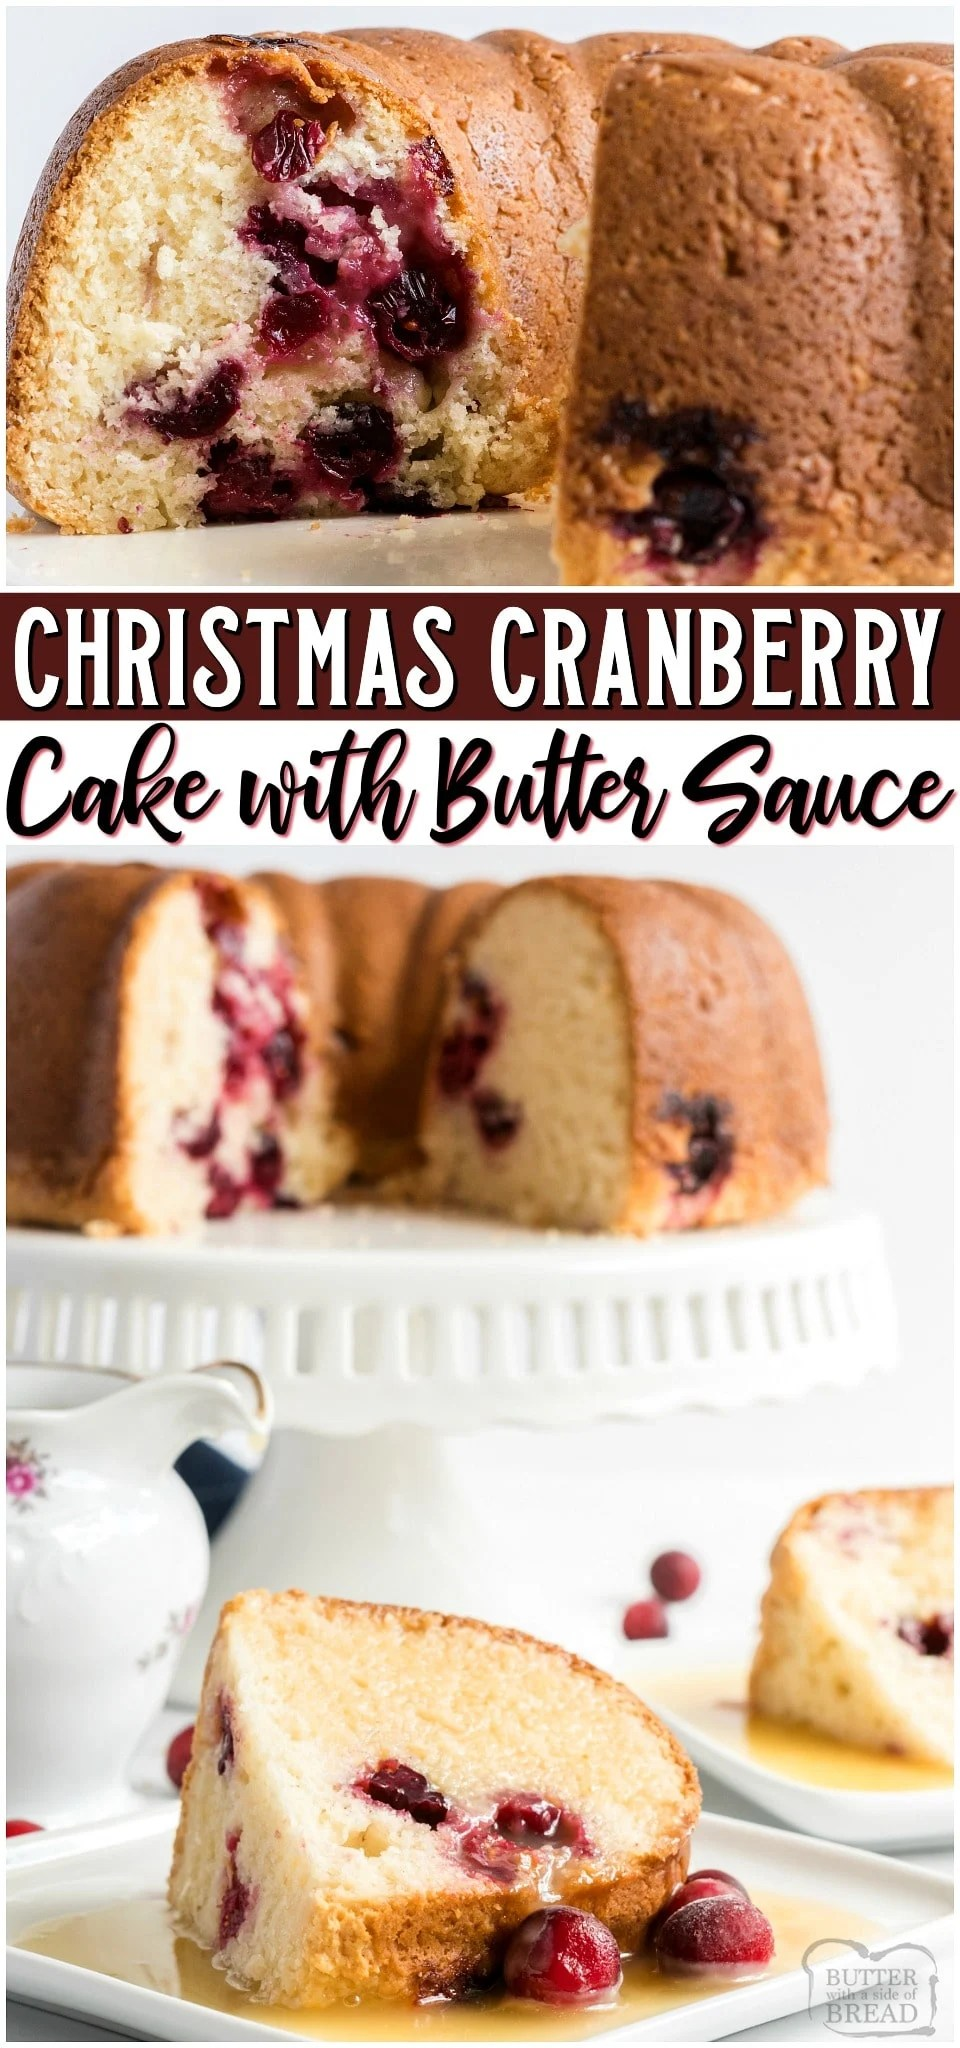 Christmas Cranberry Cake topped with a sweet butter sauce is perfect for Christmas or any occasion! Easy homemade cranberry cake recipe uses fresh cranberries for a delightful, flavorful dessert.